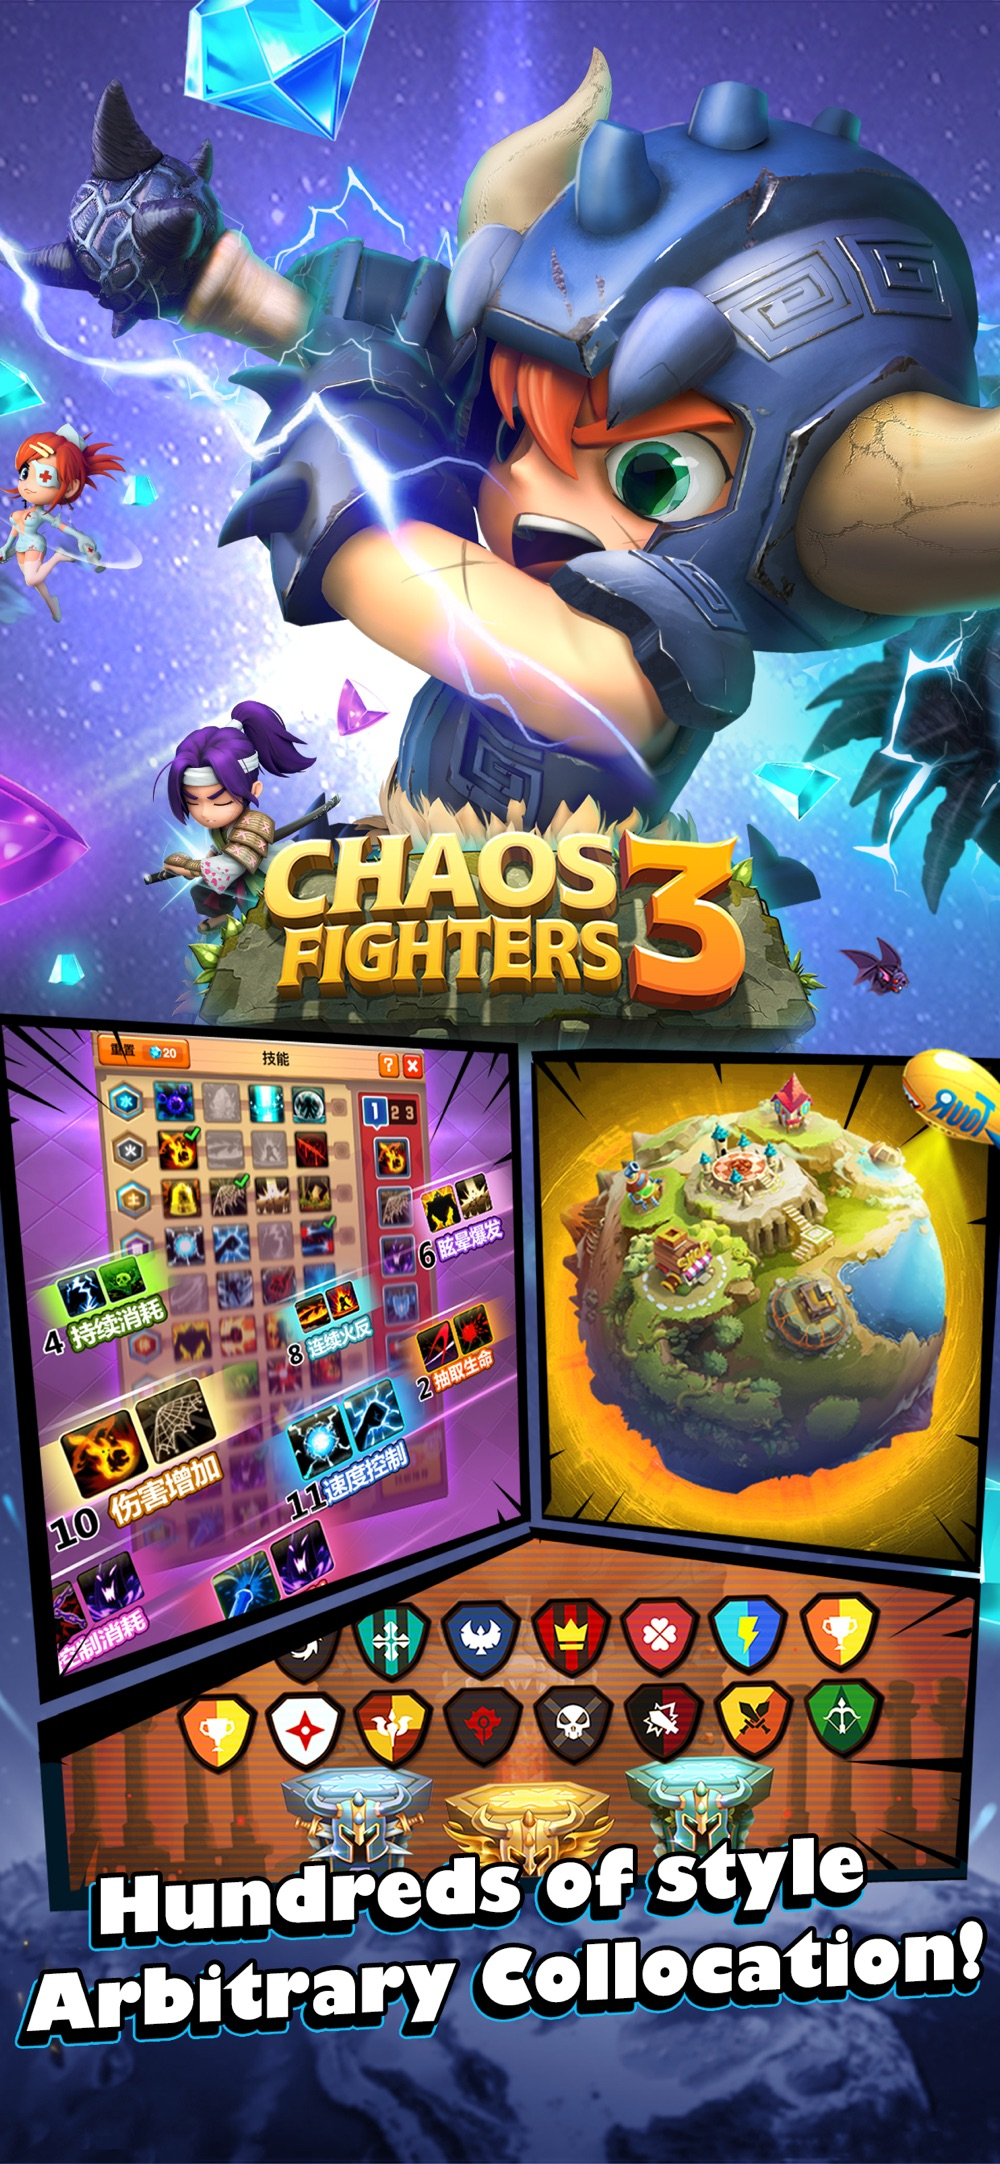 ChaosFighters3 Cheat Codes